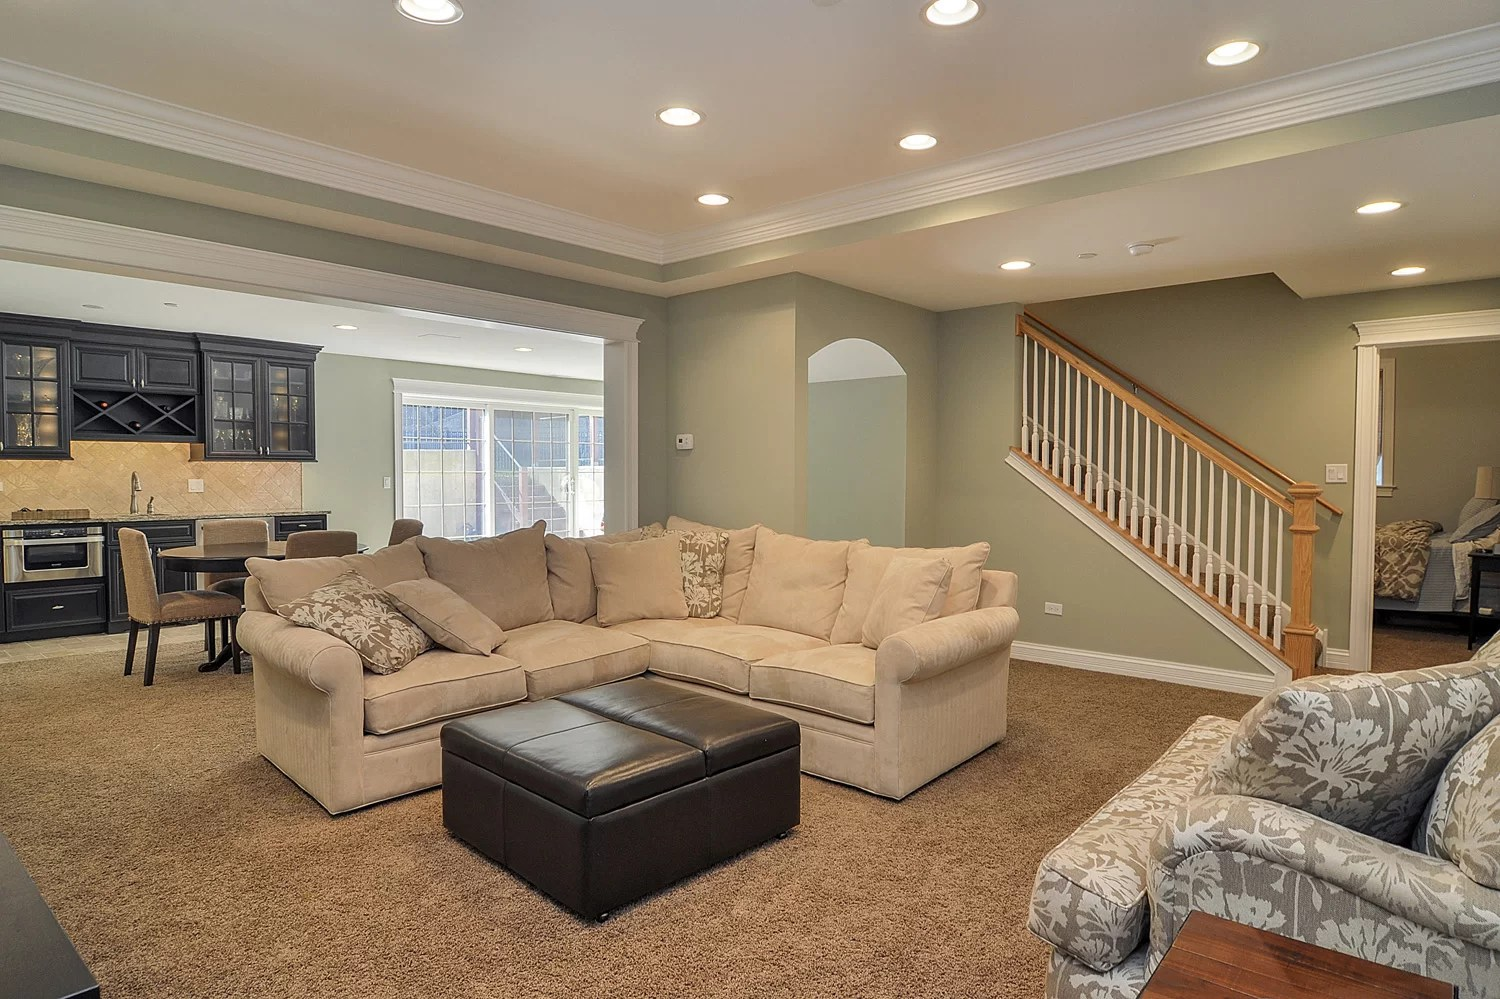 Dave Amp Tara S Basement Remodel Pictures Home Remodeling